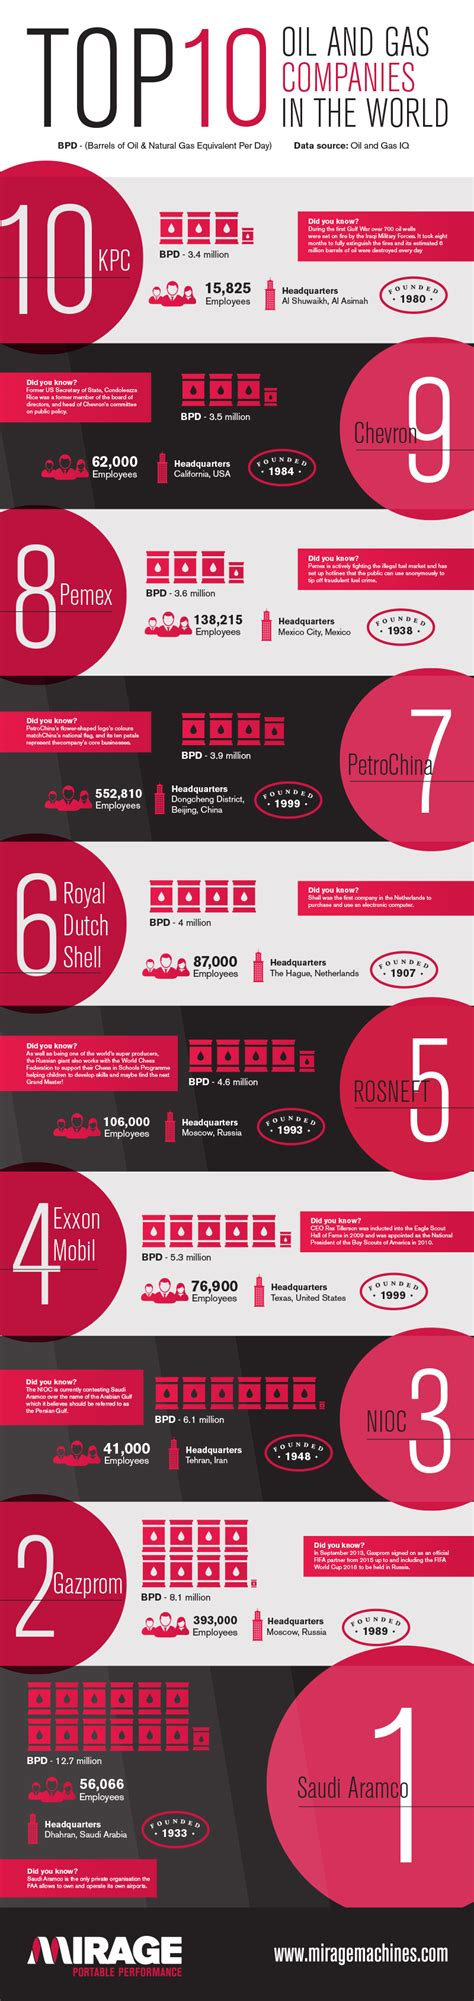 the top ten oil and gas companies in the world infographic